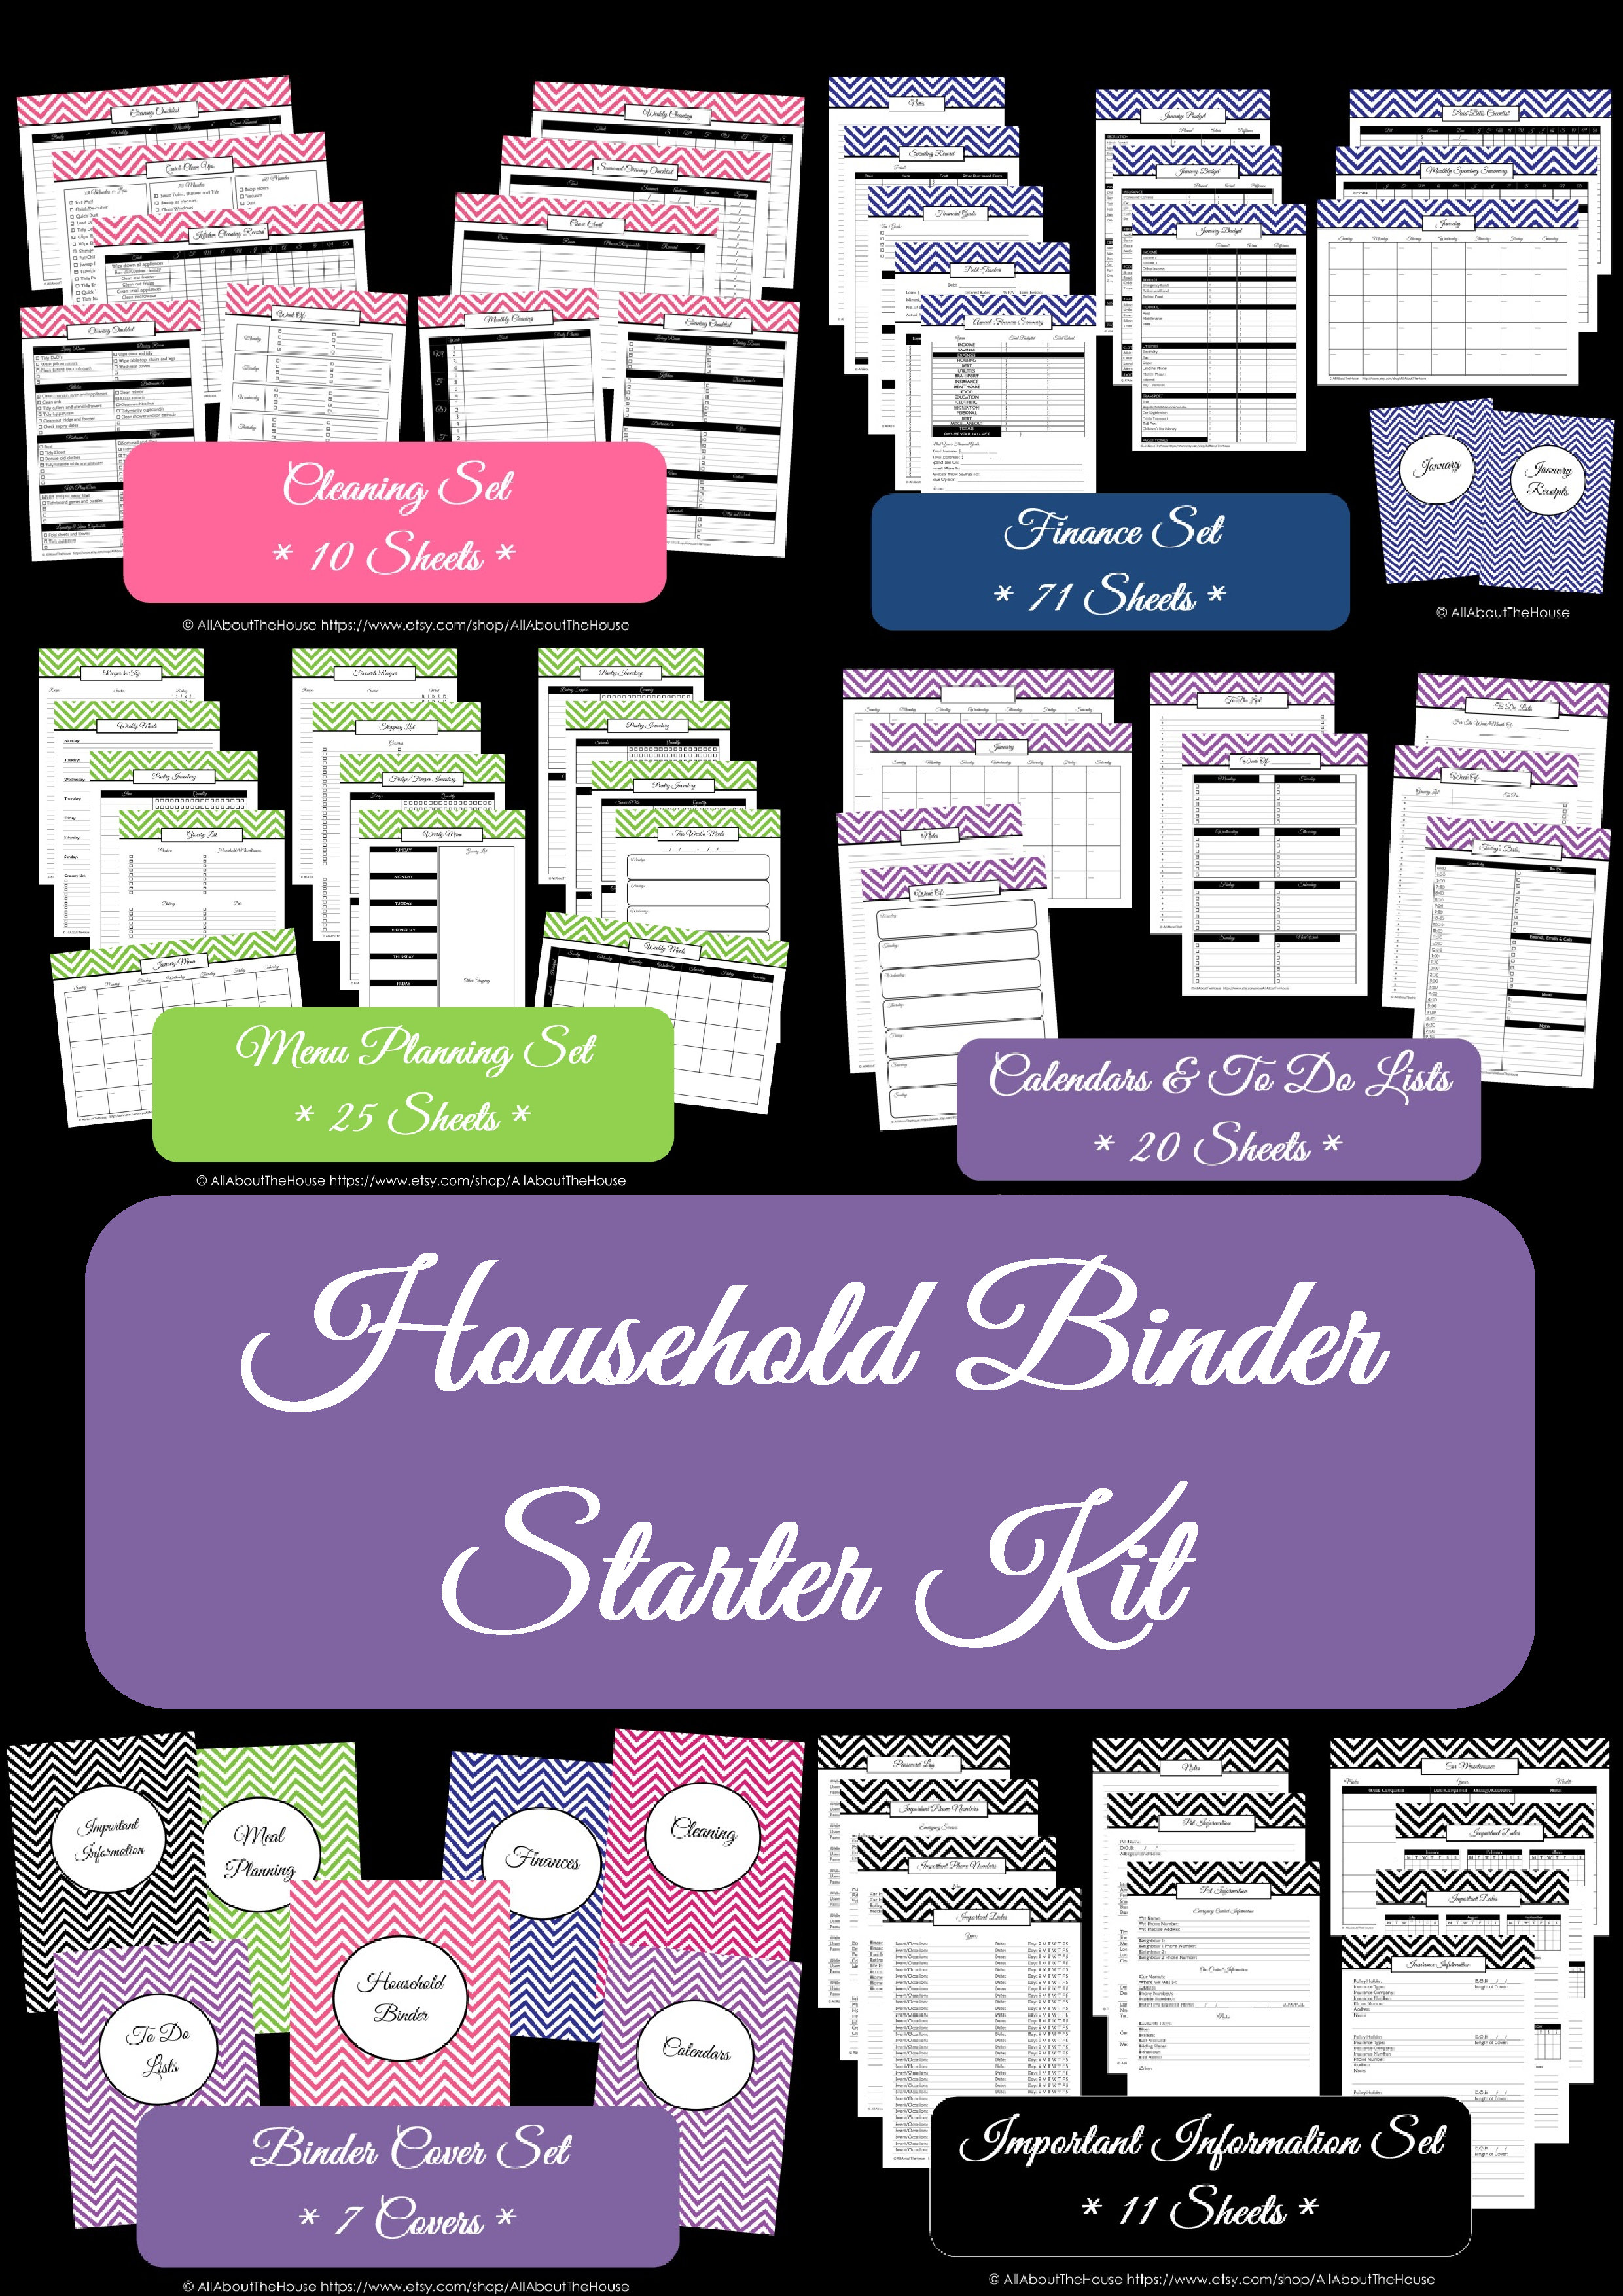 Payment On Invoice Printable Budget Plannerfinance Binder Update Valid Vat Invoice Pdf with Scheduling And Invoicing Software Excel  The New Chevron Household Binder Set Invoice Styles Excel